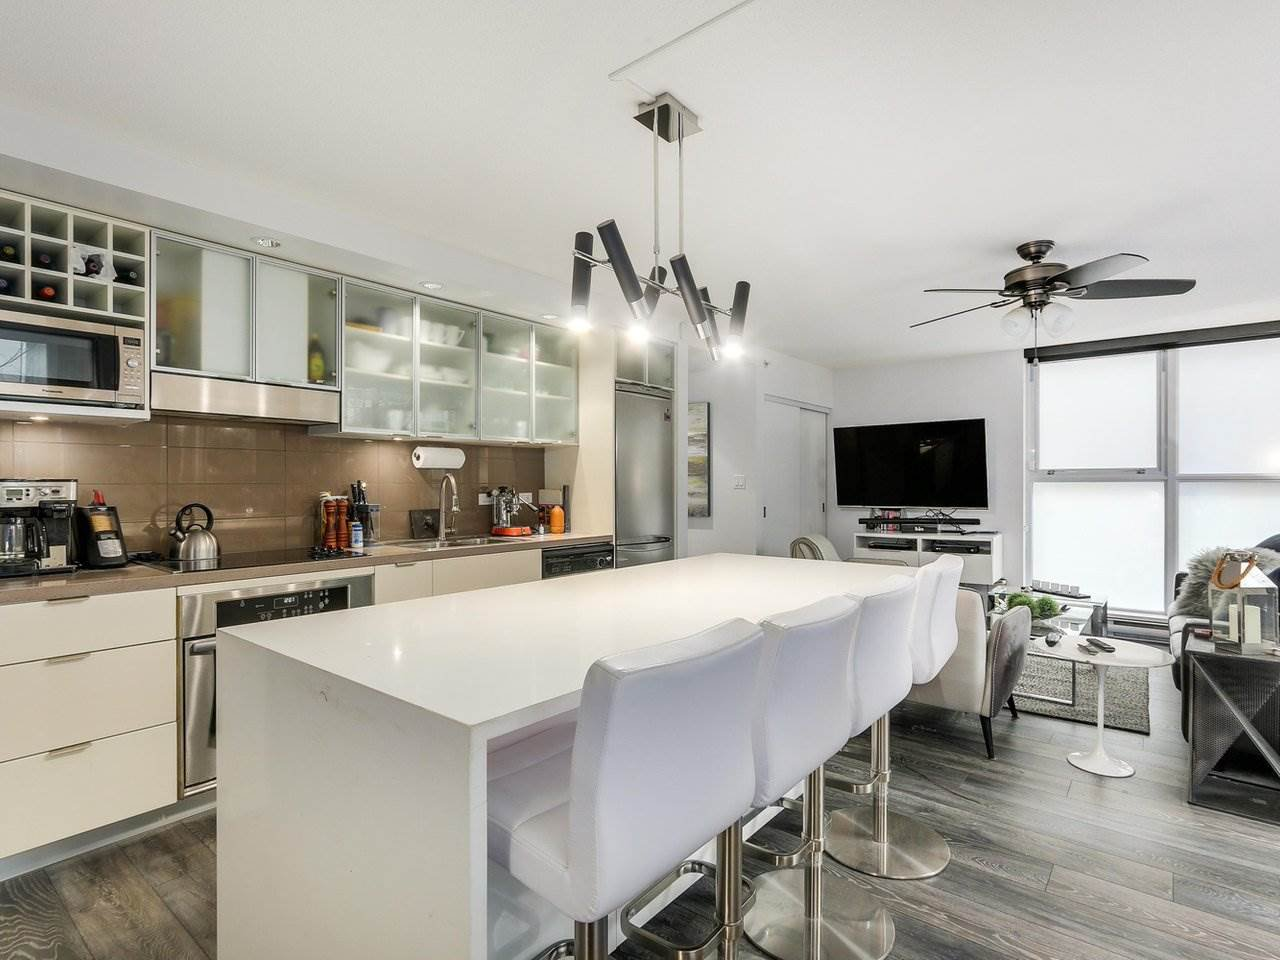 Photo 9: Photos: 217 168 POWELL Street in Vancouver: Downtown VE Condo for sale (Vancouver East)  : MLS®# R2386644